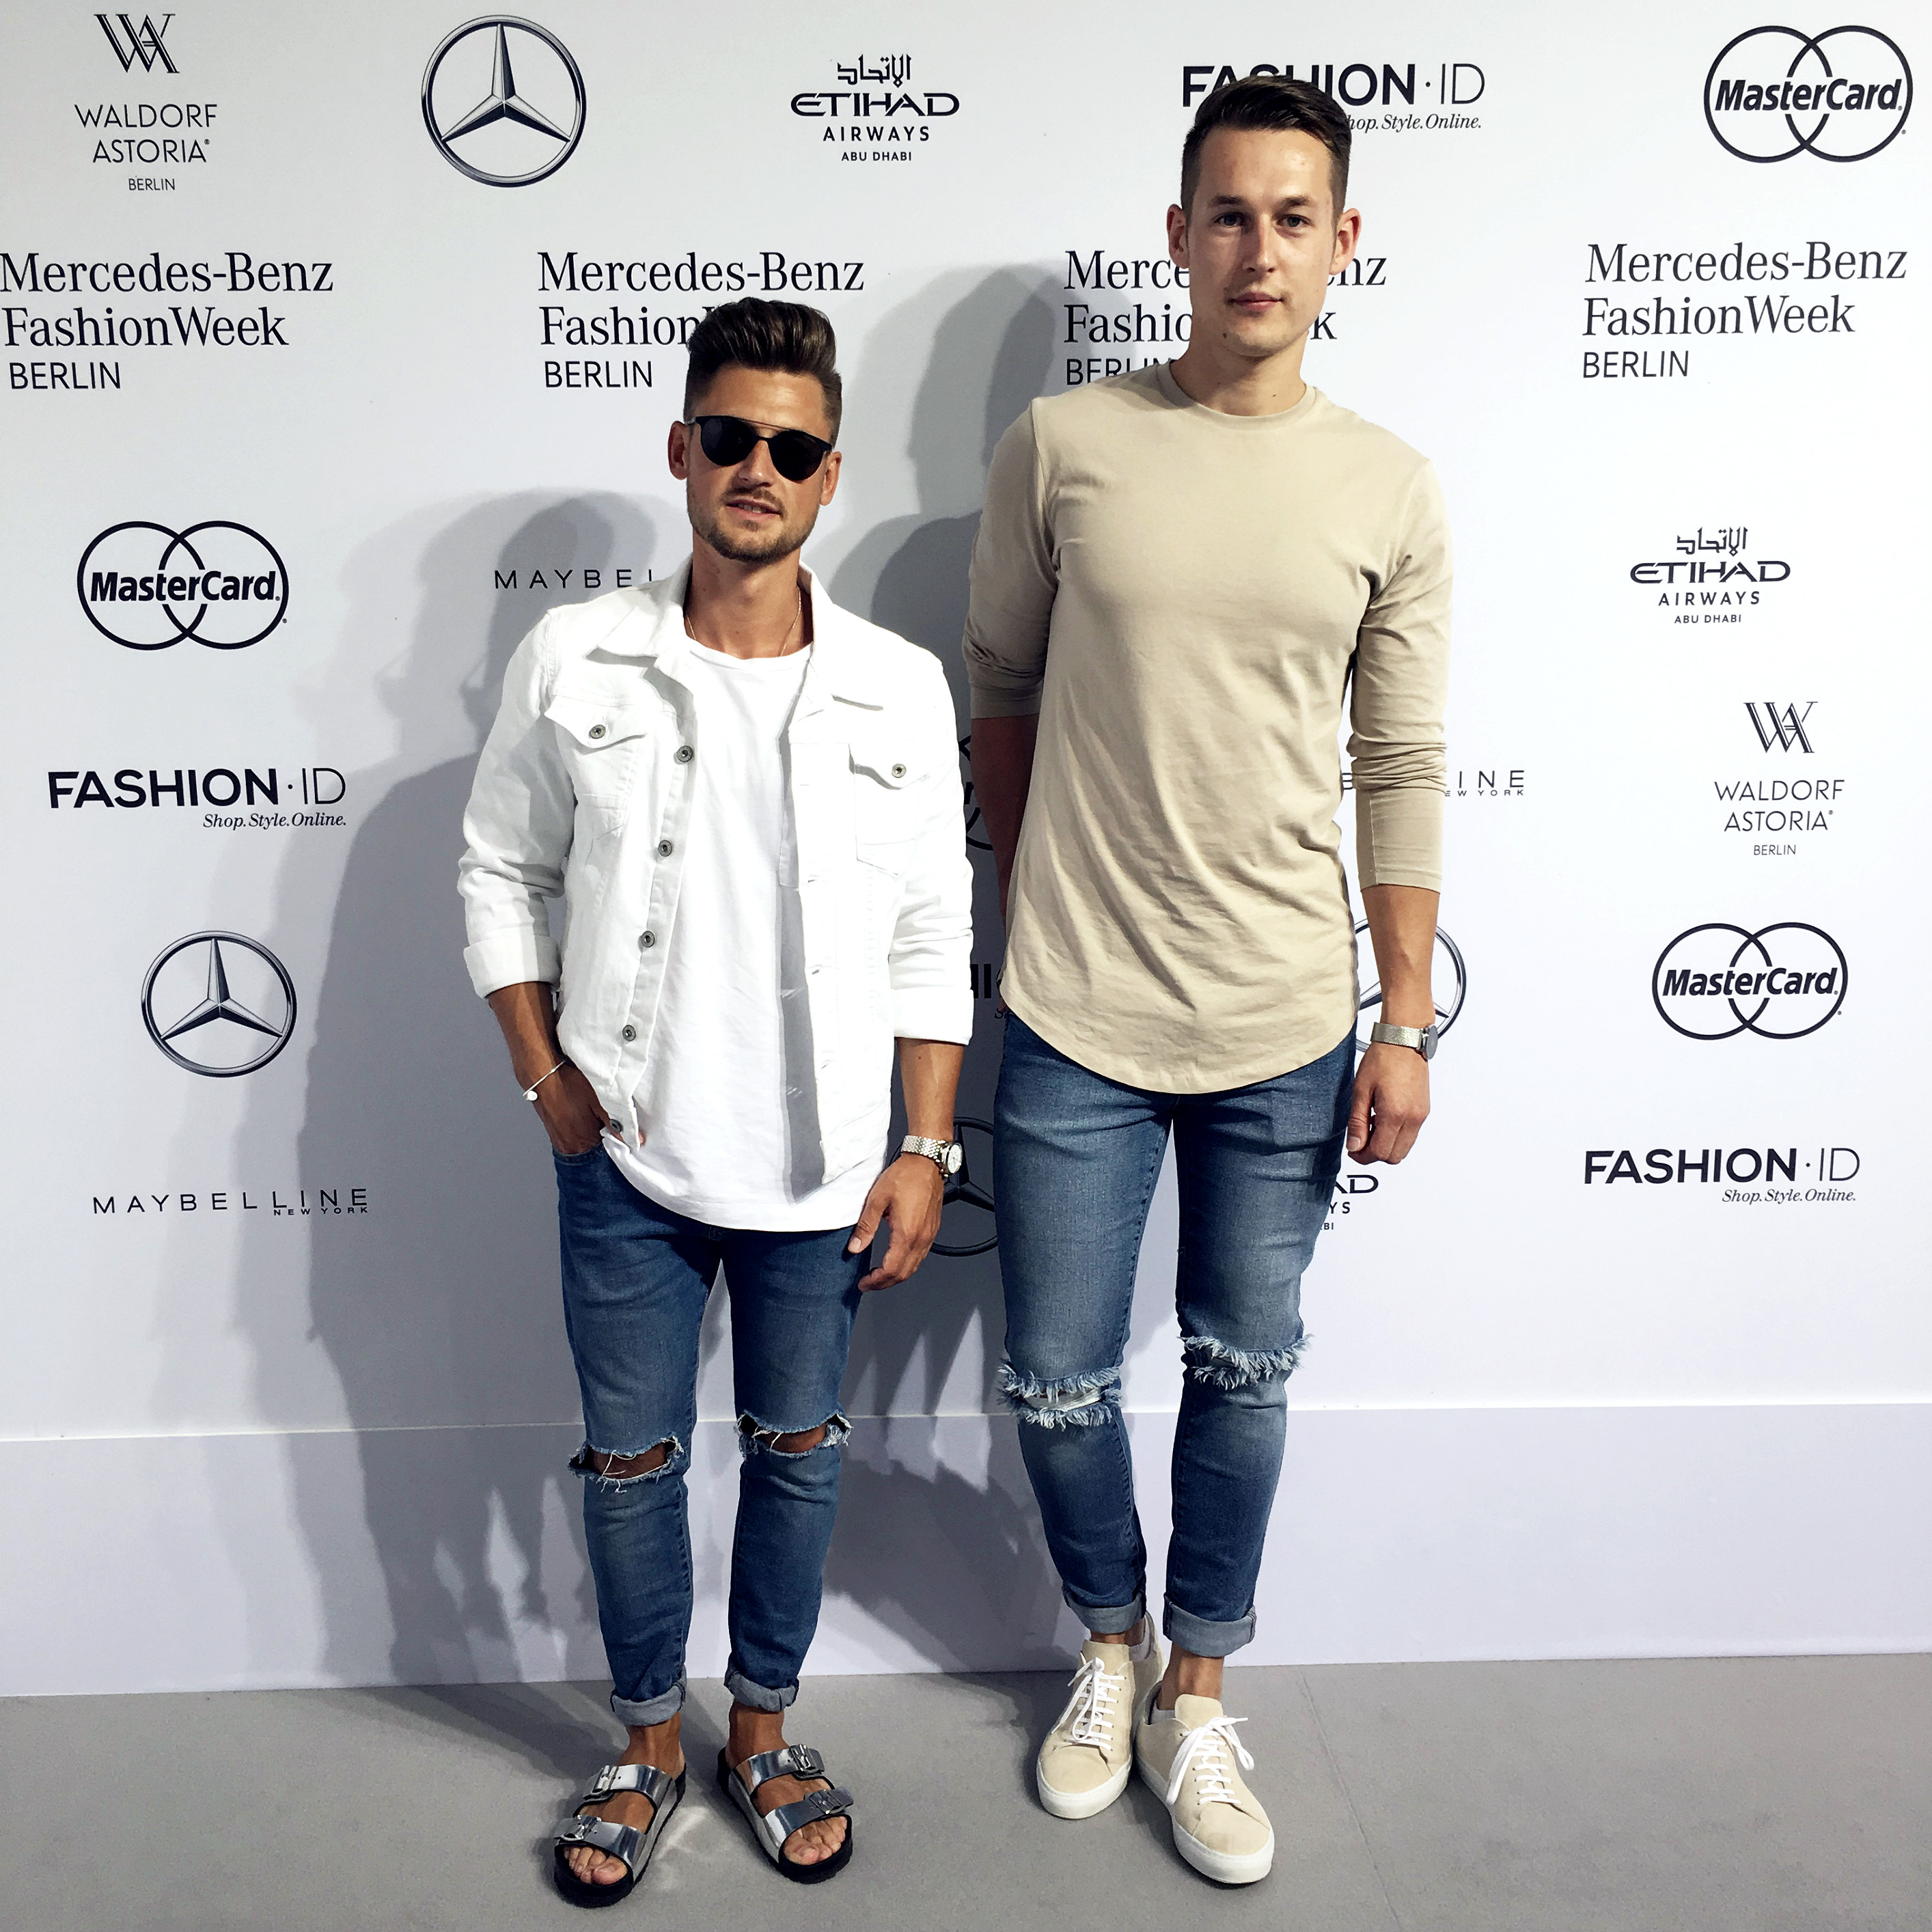 Männer Sommer Outfit Outfits Sommer Männer 15 Ideal White Party Outfit Ideas For Men